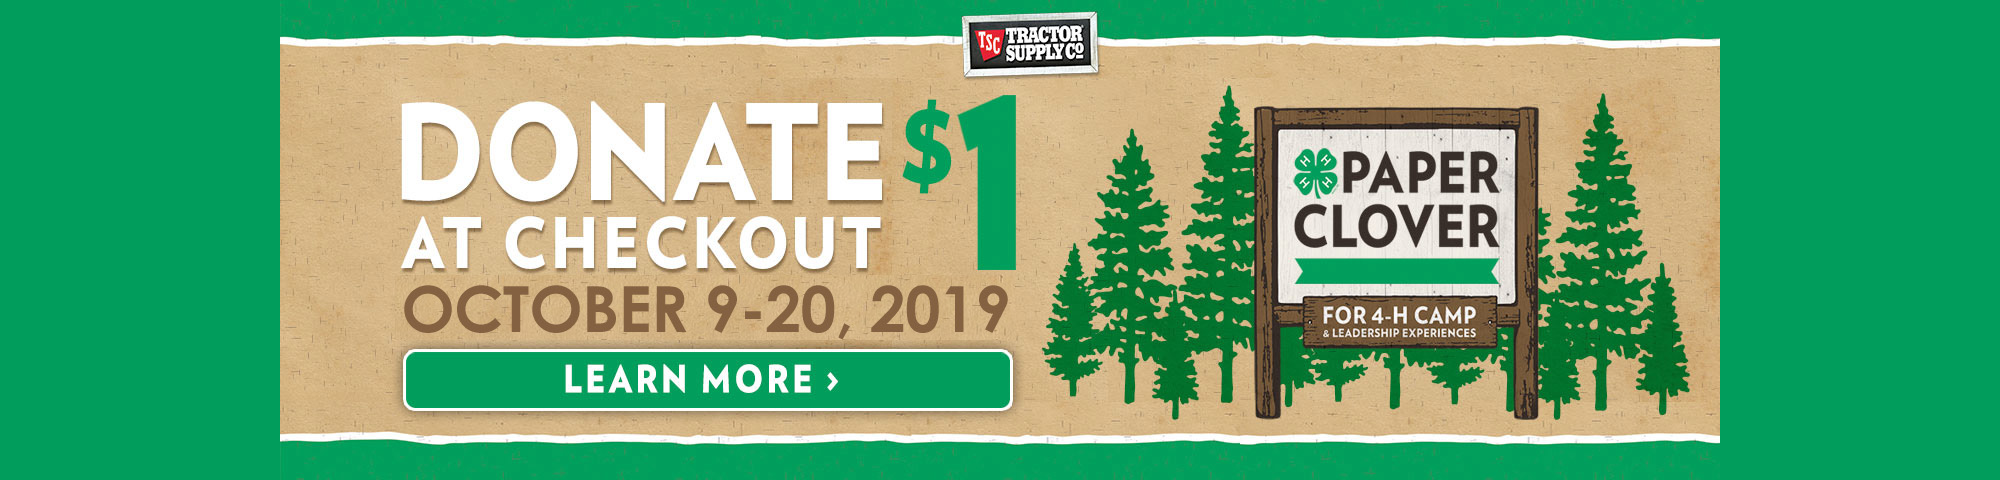 TSC Paper Clover October 9-10, 2019. Donate $1 at checkout. Learn more.